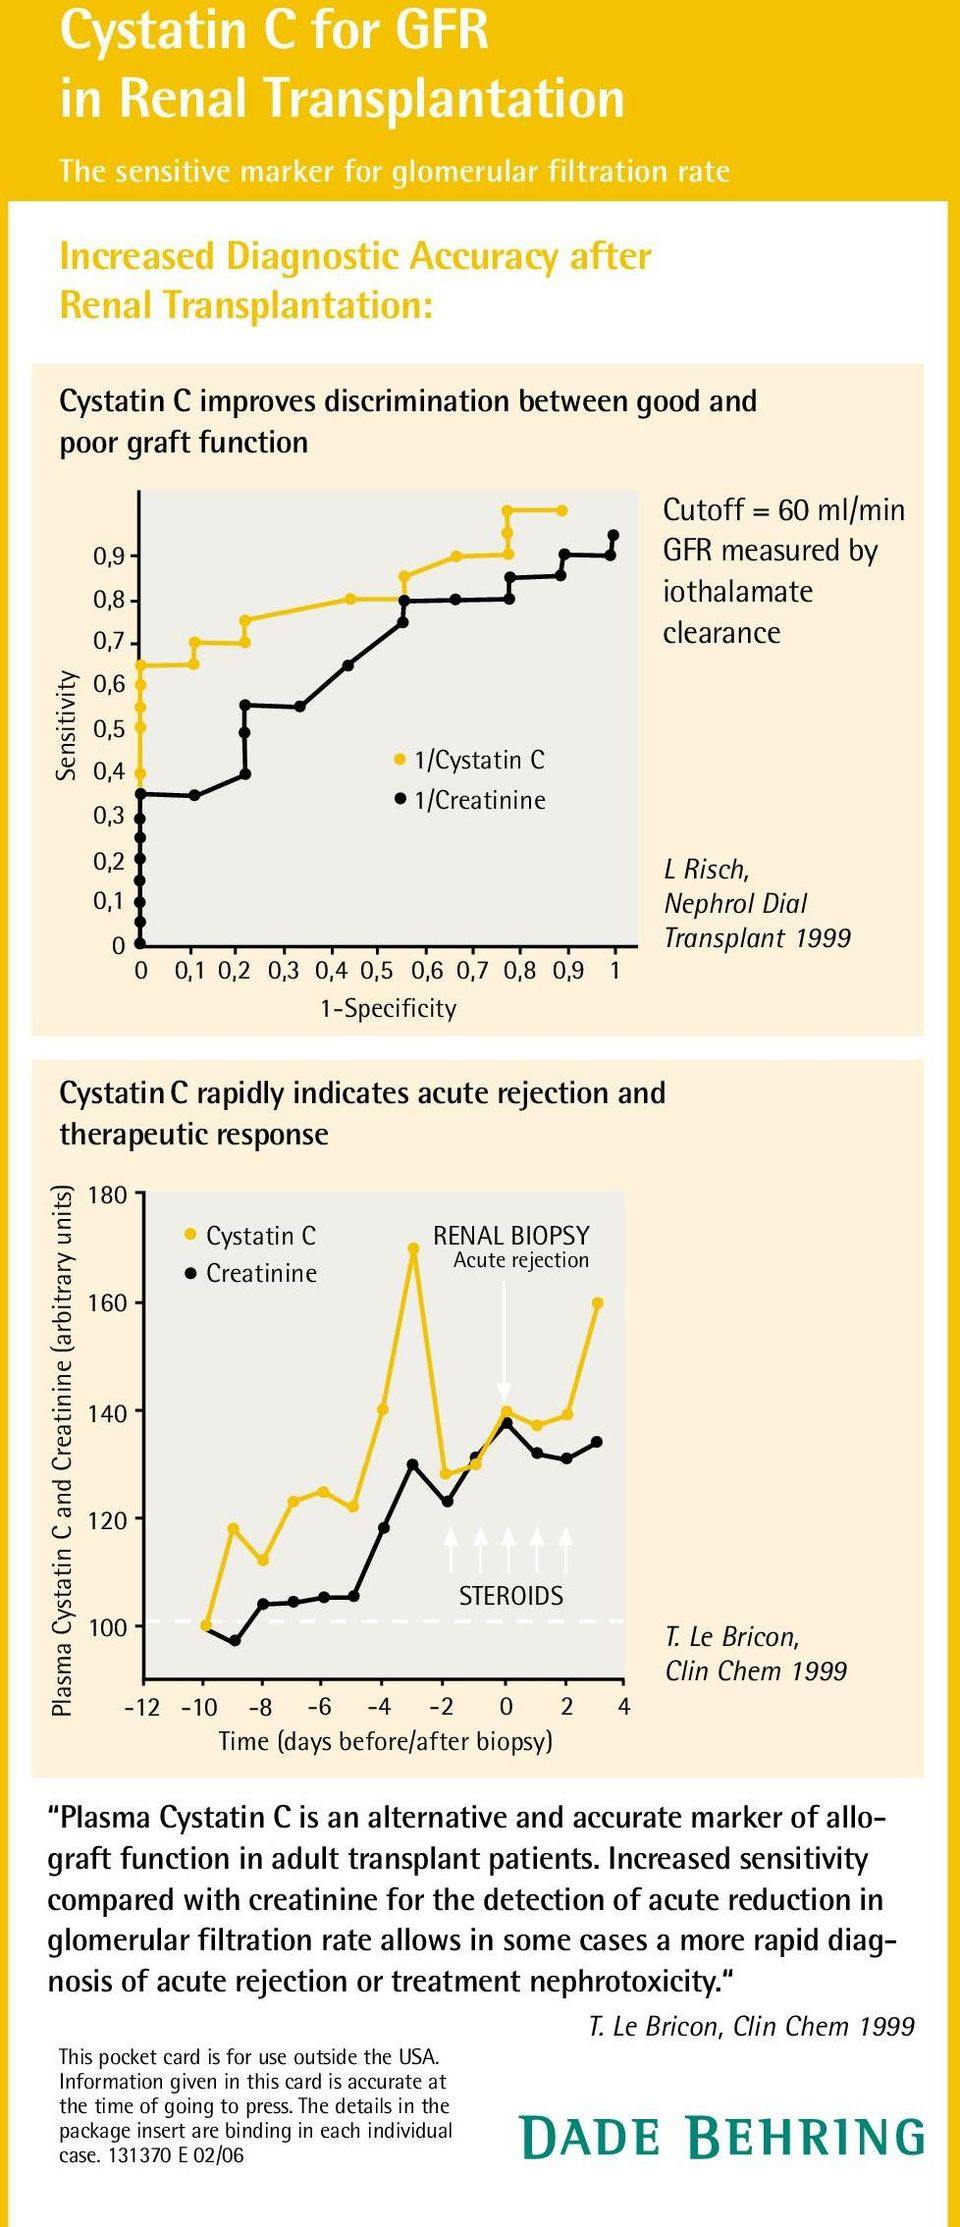 Risch, Nephrol Dial Transplant 1999 Cystatin C rapidly indicates acute rejection and therapeutic response Plasma Cystatin C and Creatinine (arbitrary units) 180 160 140 120 100 Cystatin C Creatinine